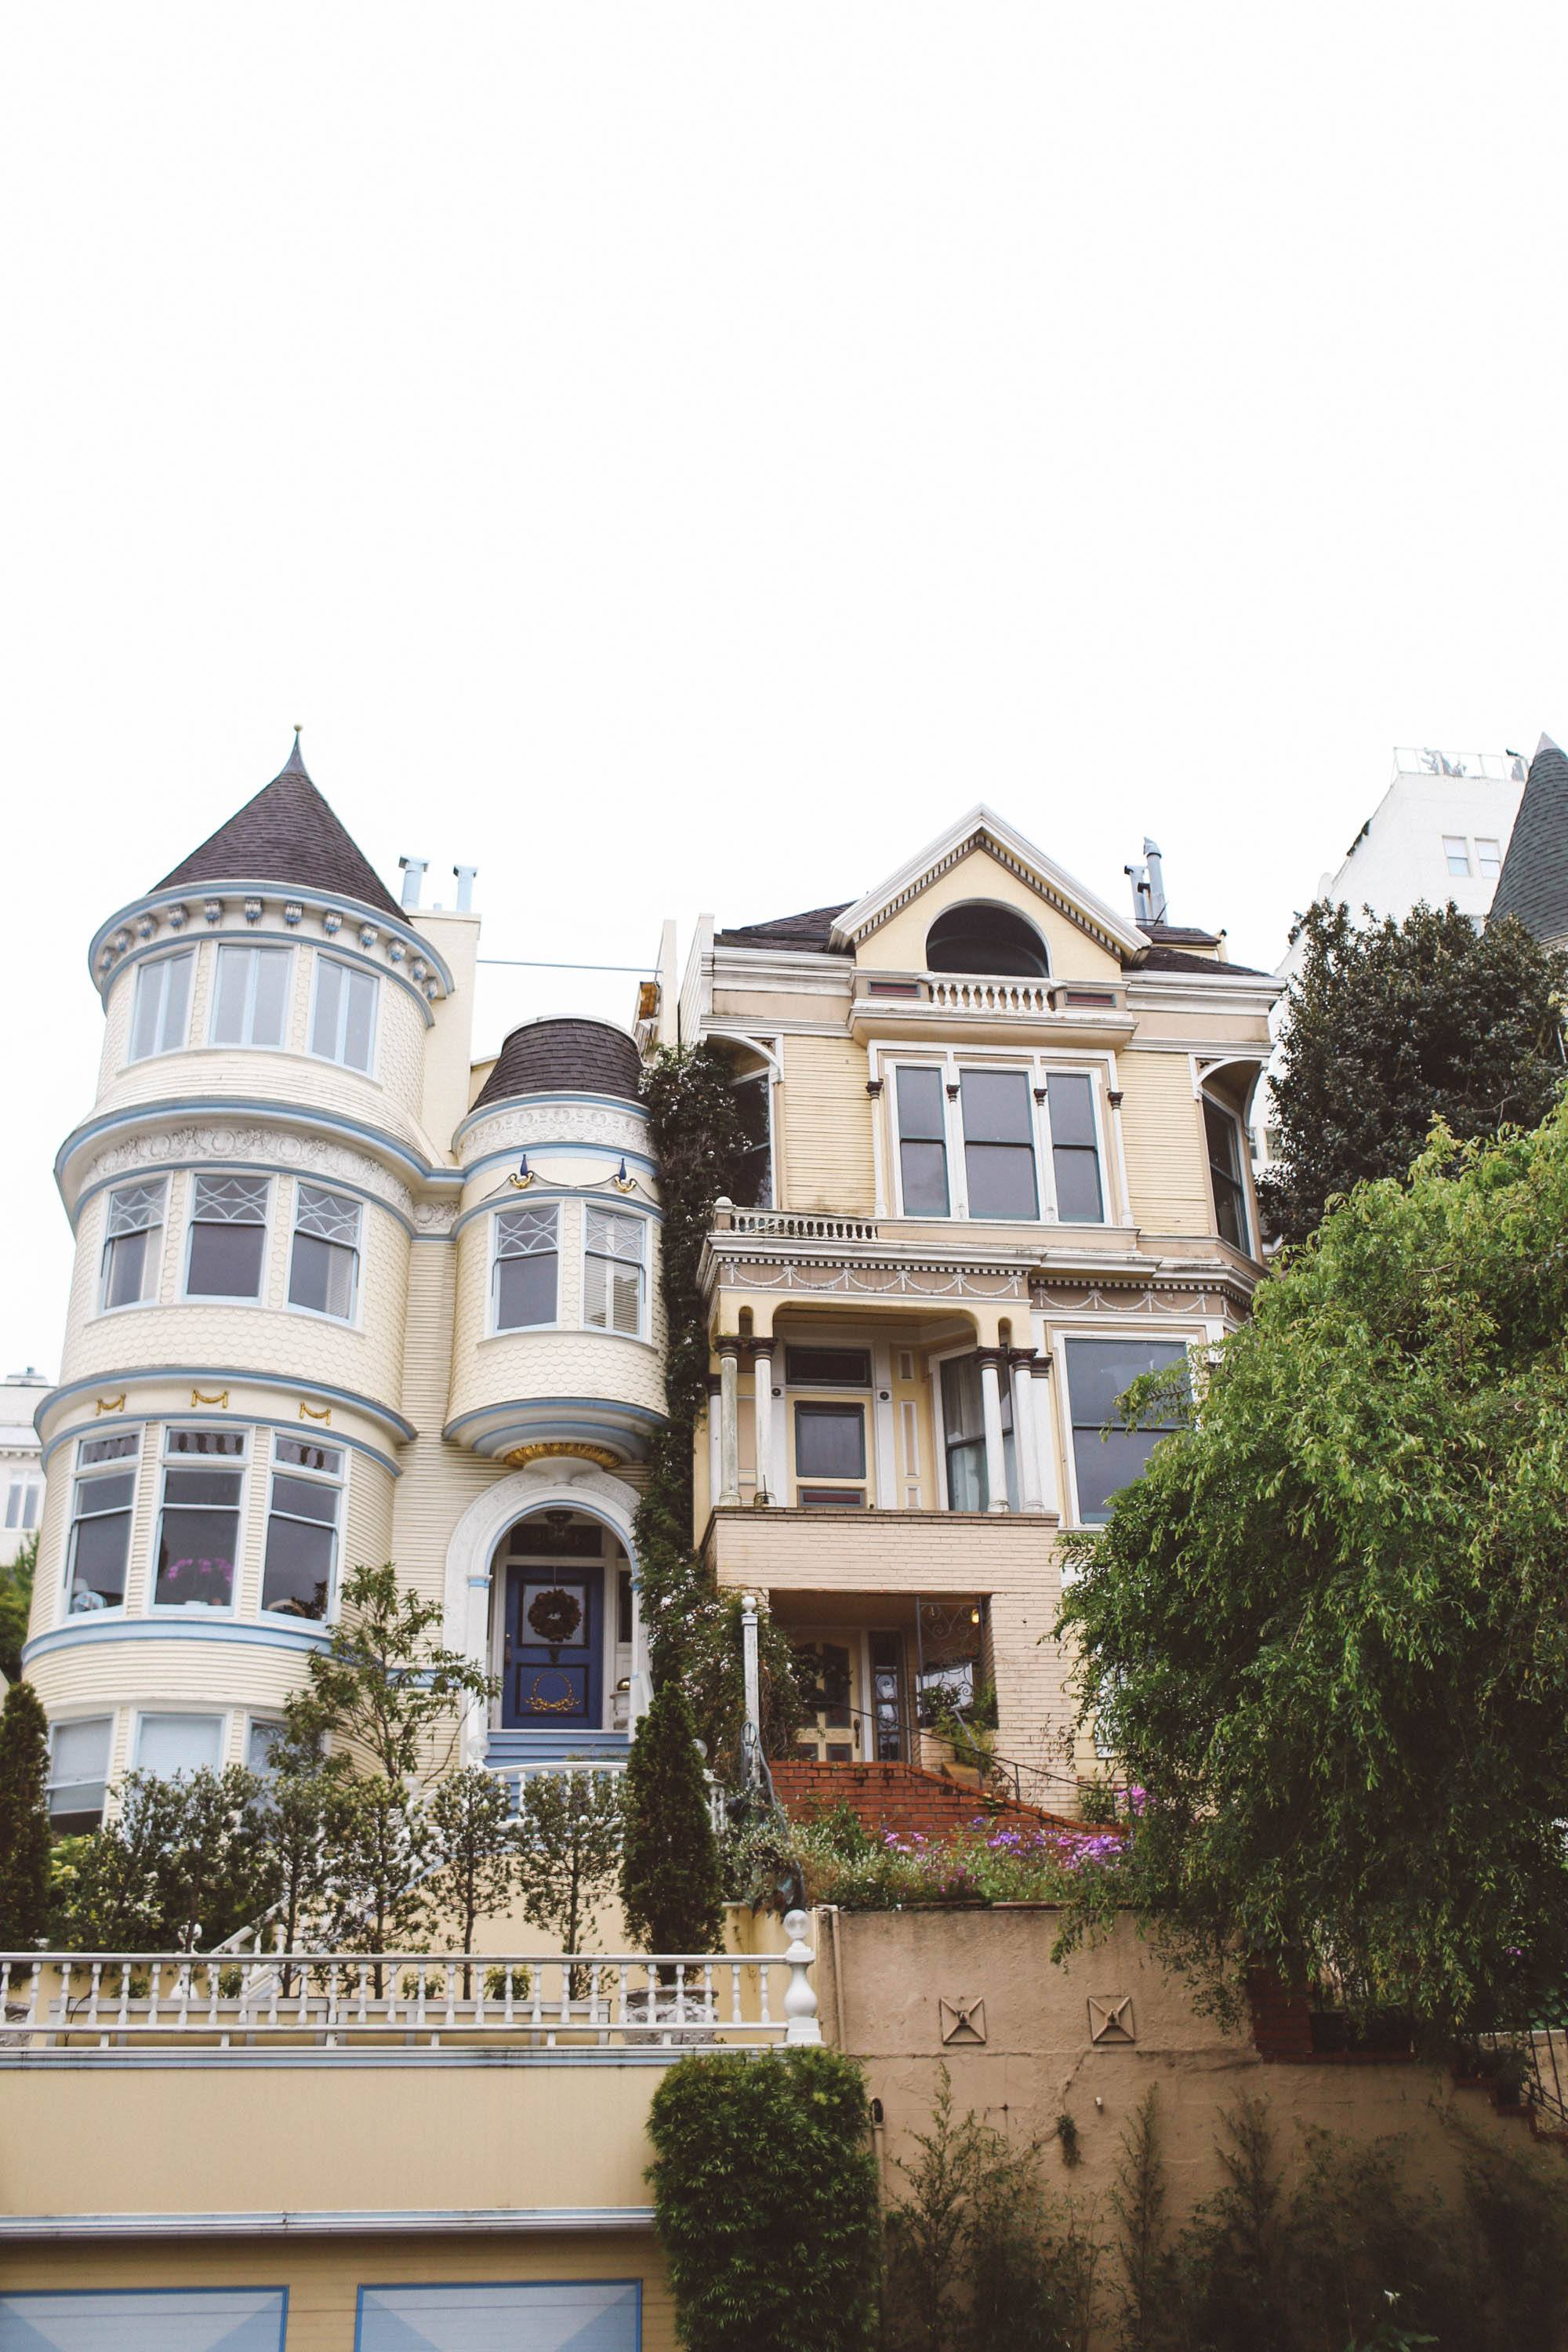 Amazing houses in the Marina District in San Francisco